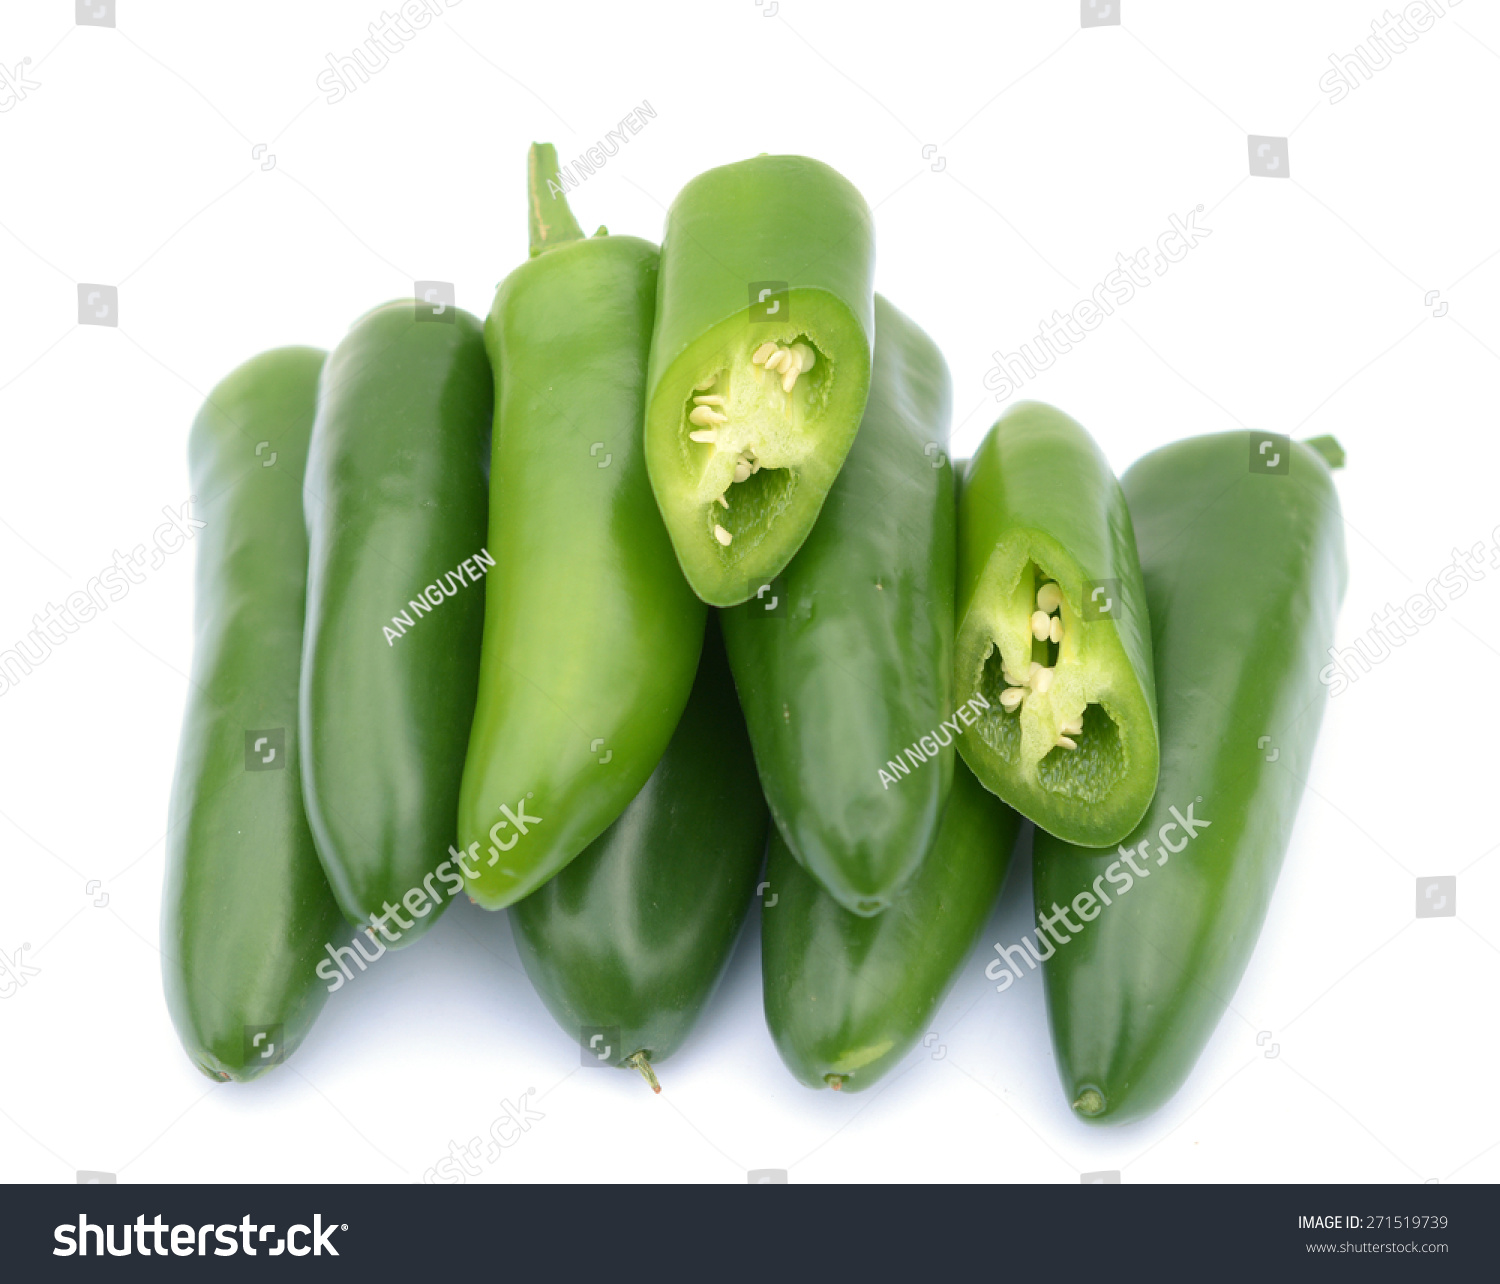 chopped whole green jalapeno peppers on stock photo